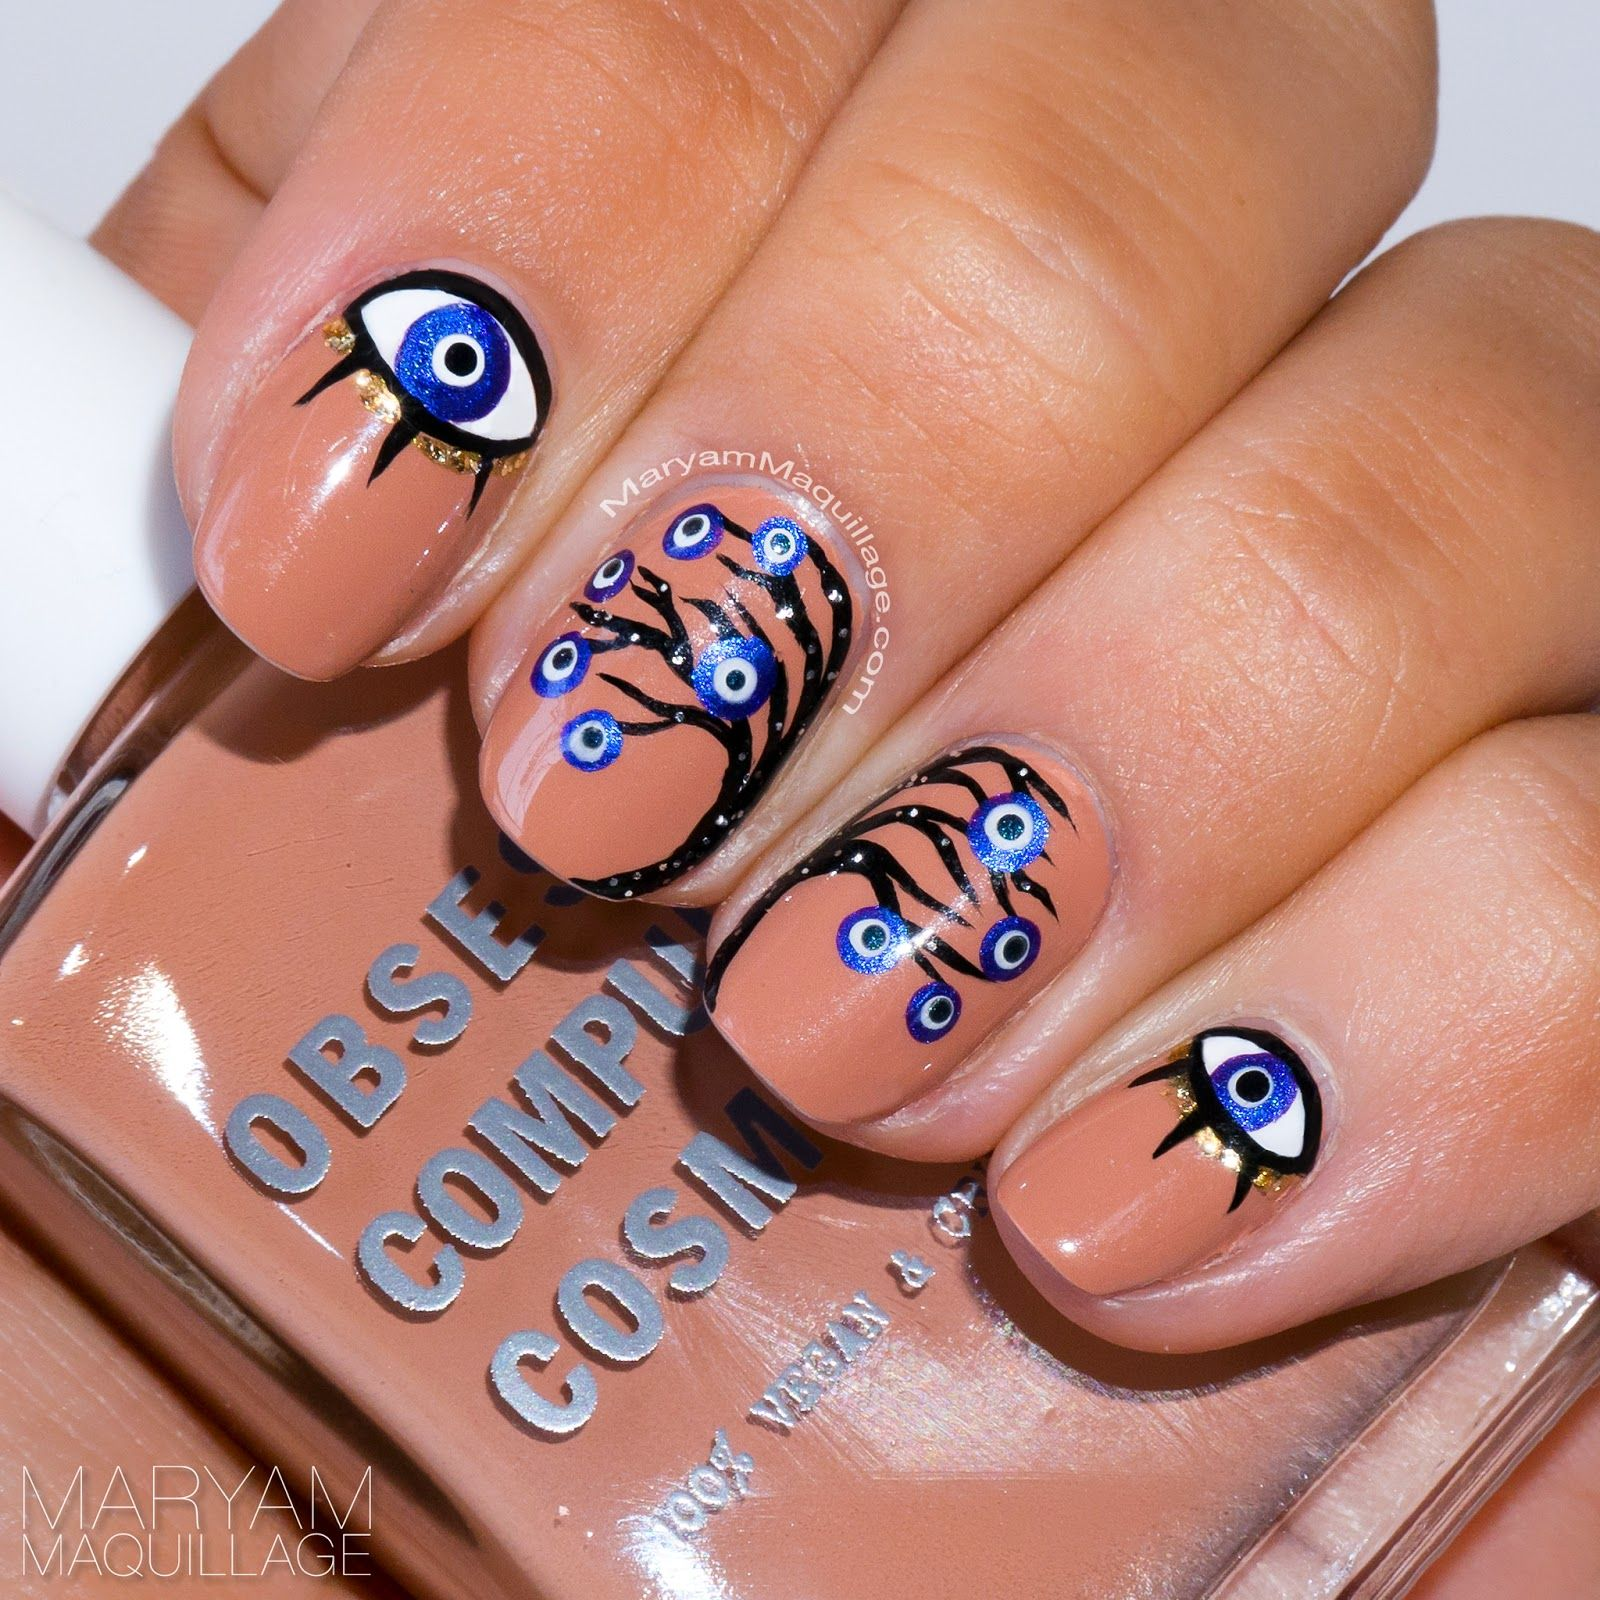 my hand-painted evil eye nail art | My NailArt & Design | Pinterest ...